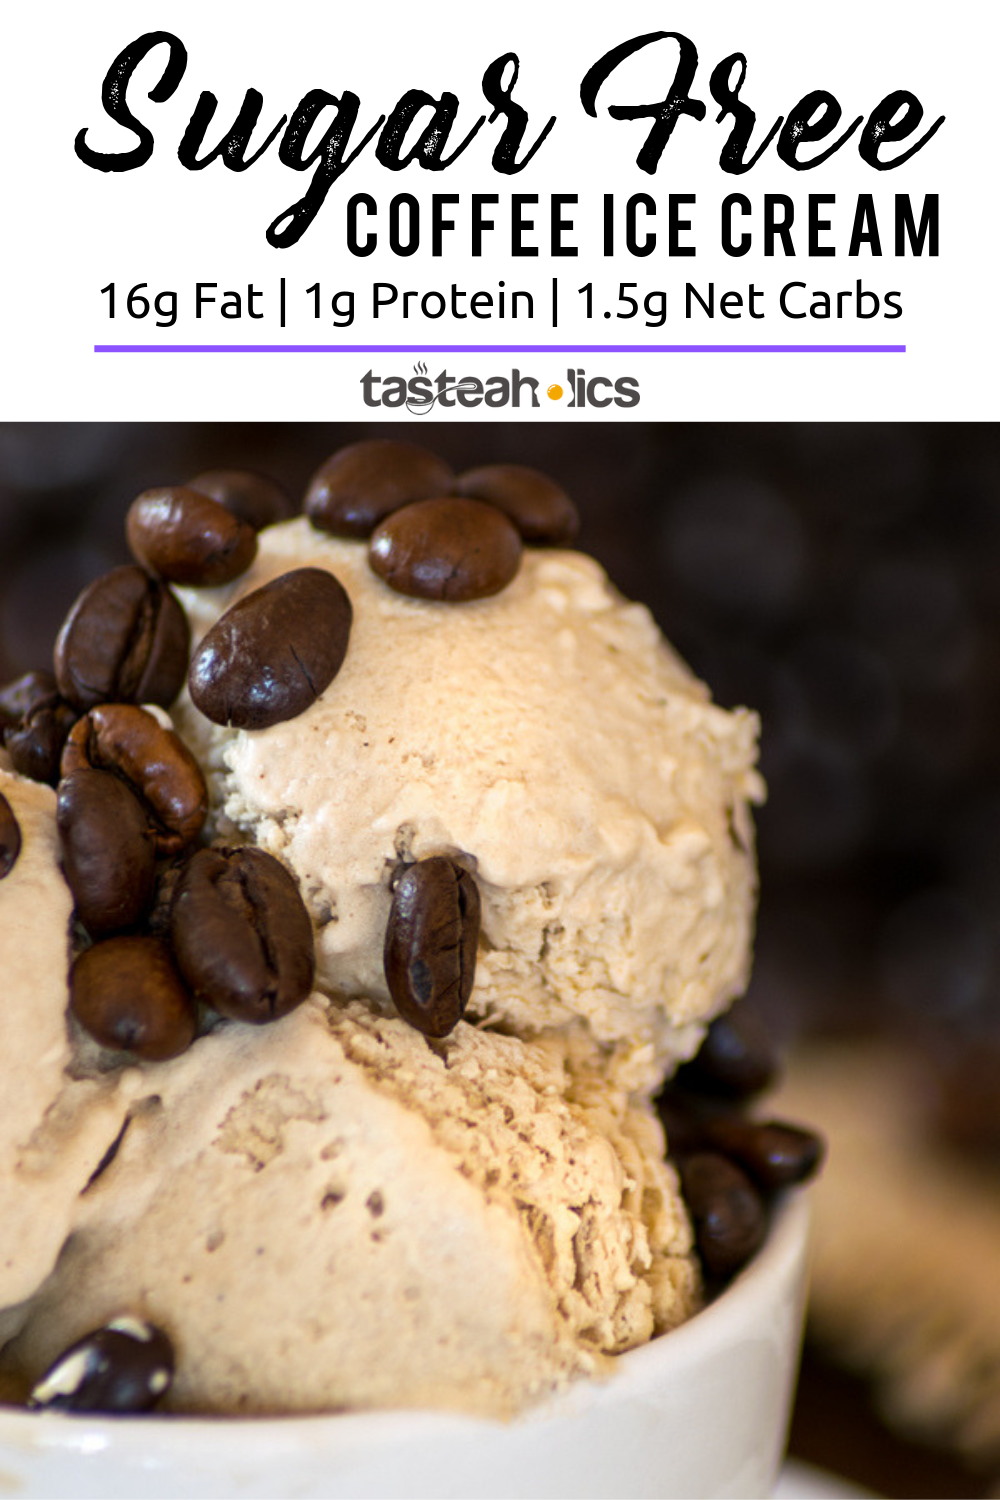 Coffee Ice Cream is a delicious treat that can make any